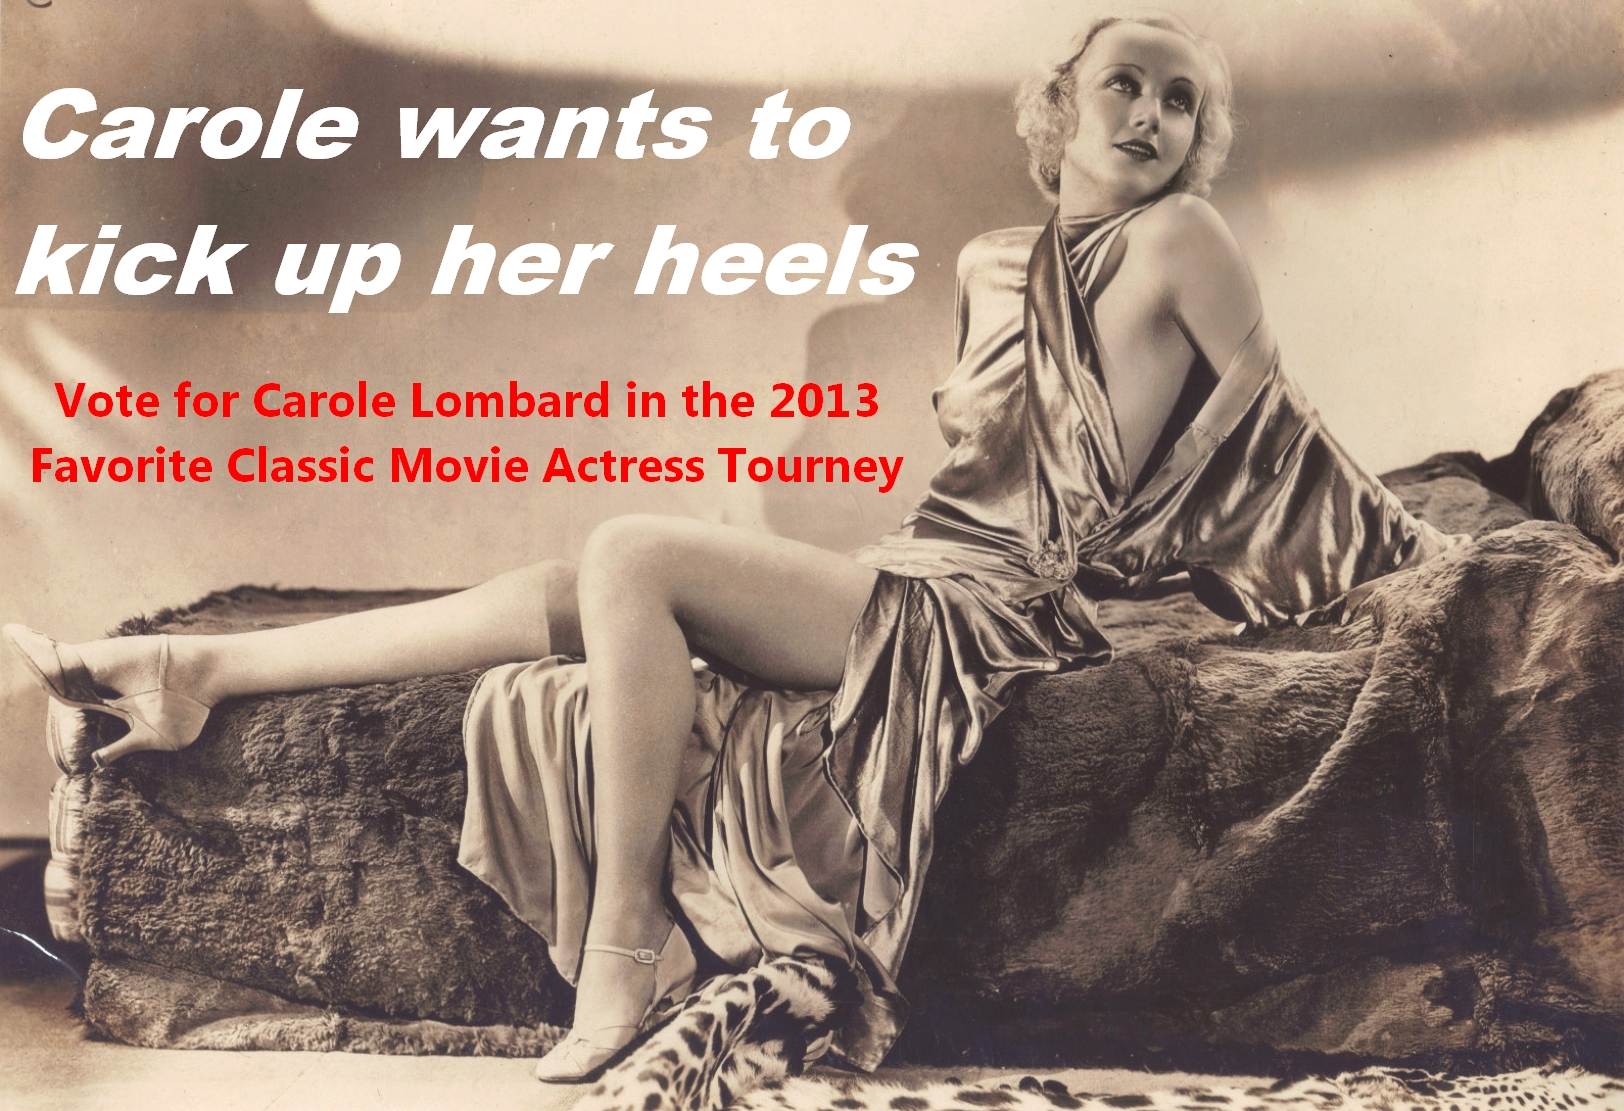 carole lombard 2013 favorite classic movie actress tourney banner 08